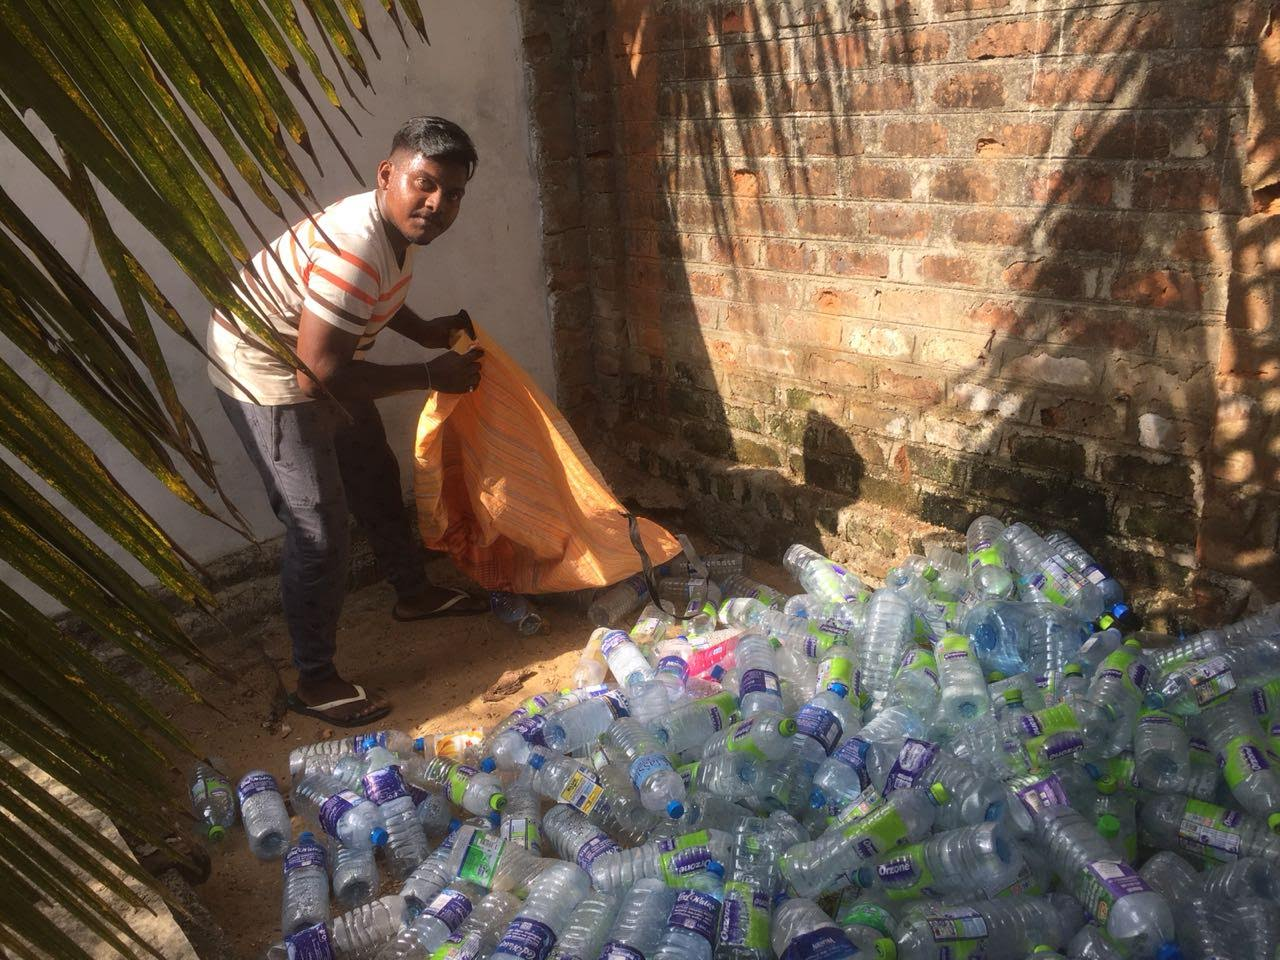 Dulan collecting bags from a classic collection spot for PET bottles - a pile some where on a hotel property.